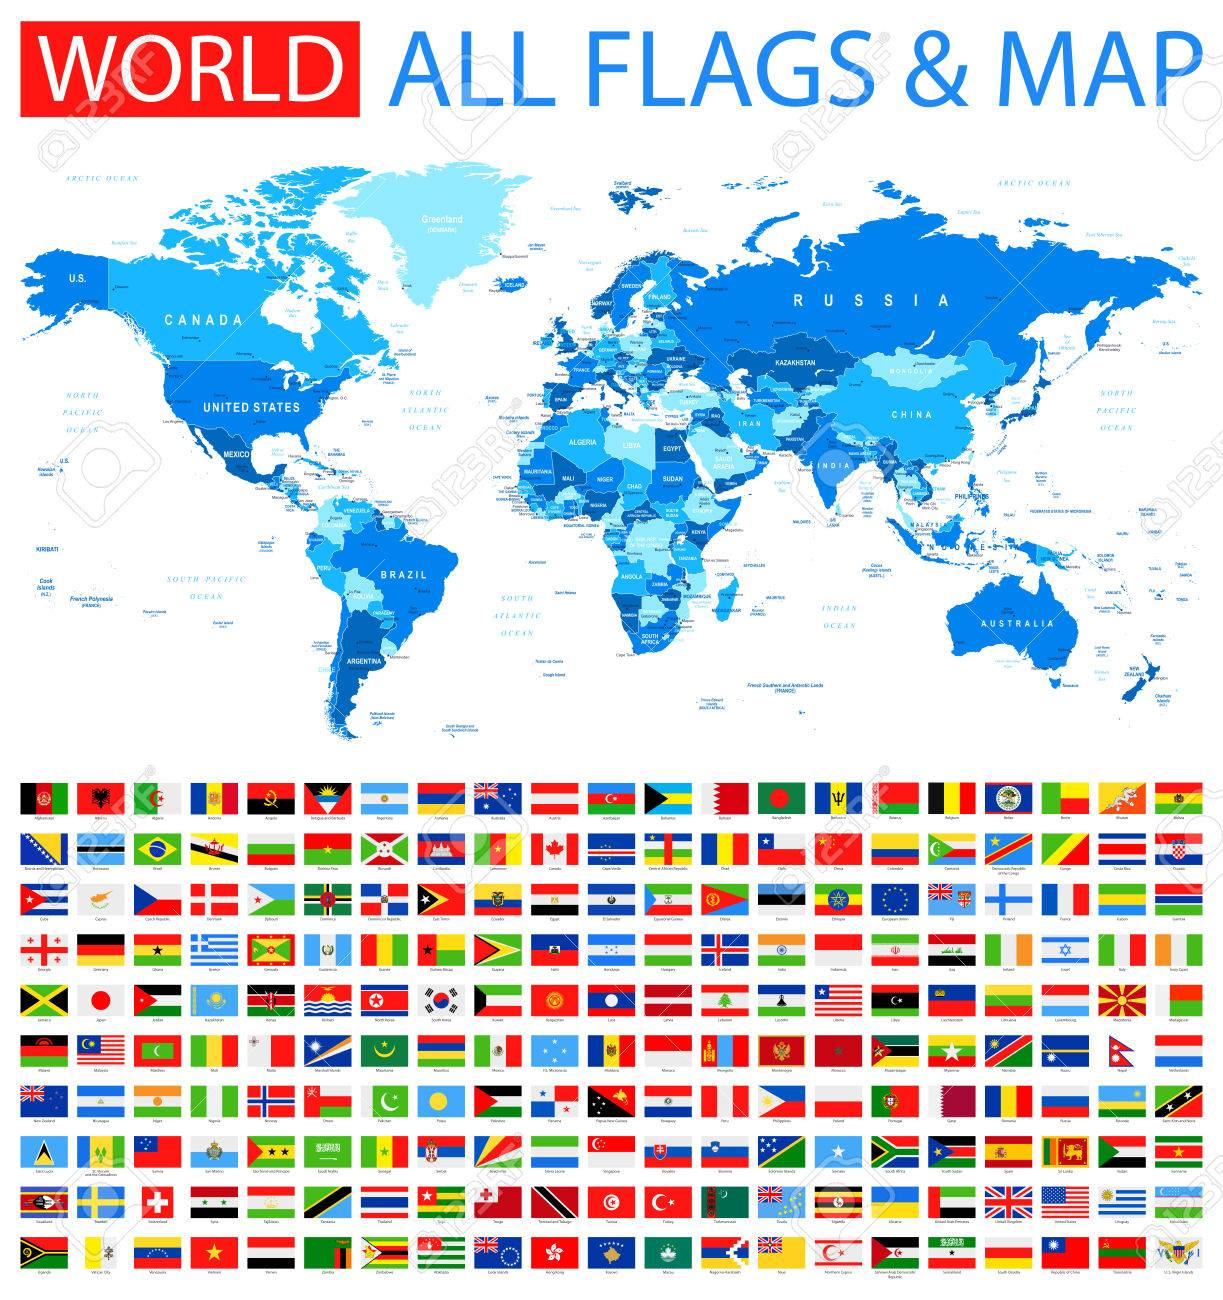 World map countries zil gallery diagram writing sample ideas and all flags and world map royalty free cliparts vectors and stock all flags and world map sciox Images